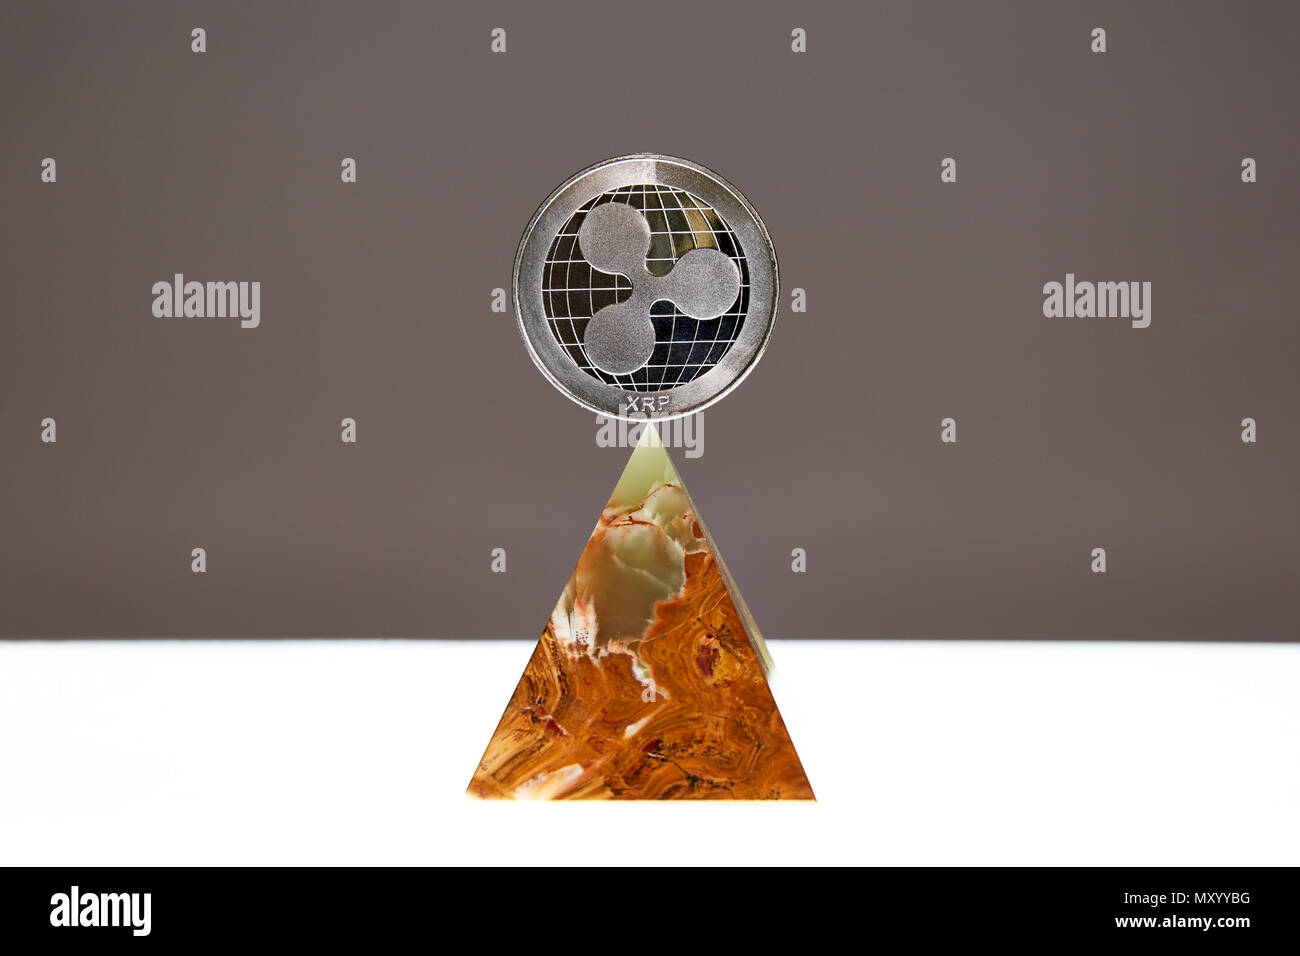 Ripple Coin sitting a top a translucent Onyx Stone. Stone symbolizes, personal power, change, facing fears.  All things people who trade crypro face Stock Photo